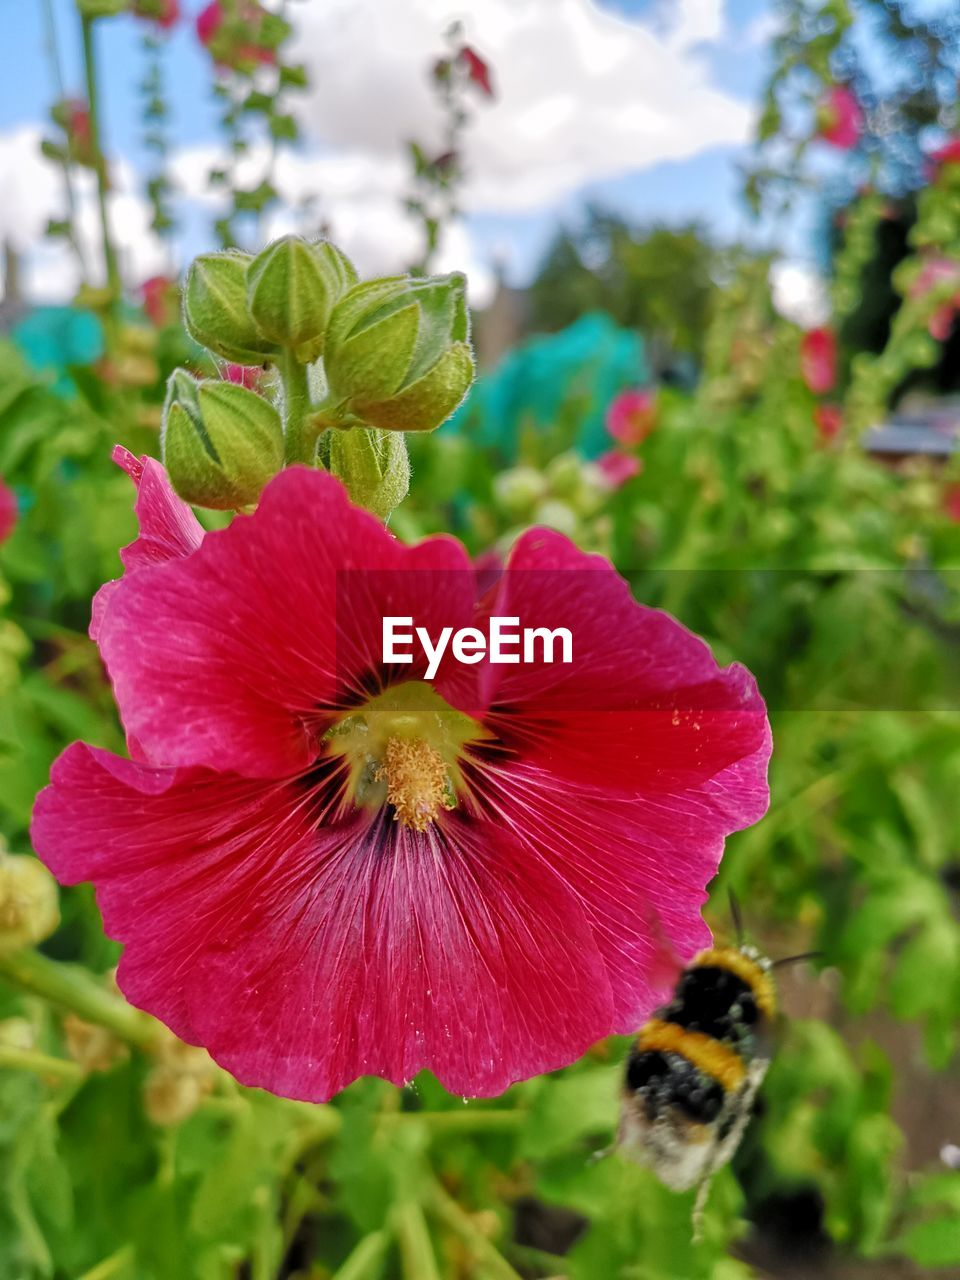 flower, flowering plant, freshness, plant, fragility, vulnerability, beauty in nature, petal, growth, close-up, flower head, inflorescence, focus on foreground, nature, day, no people, red, plant part, leaf, pollen, pollination